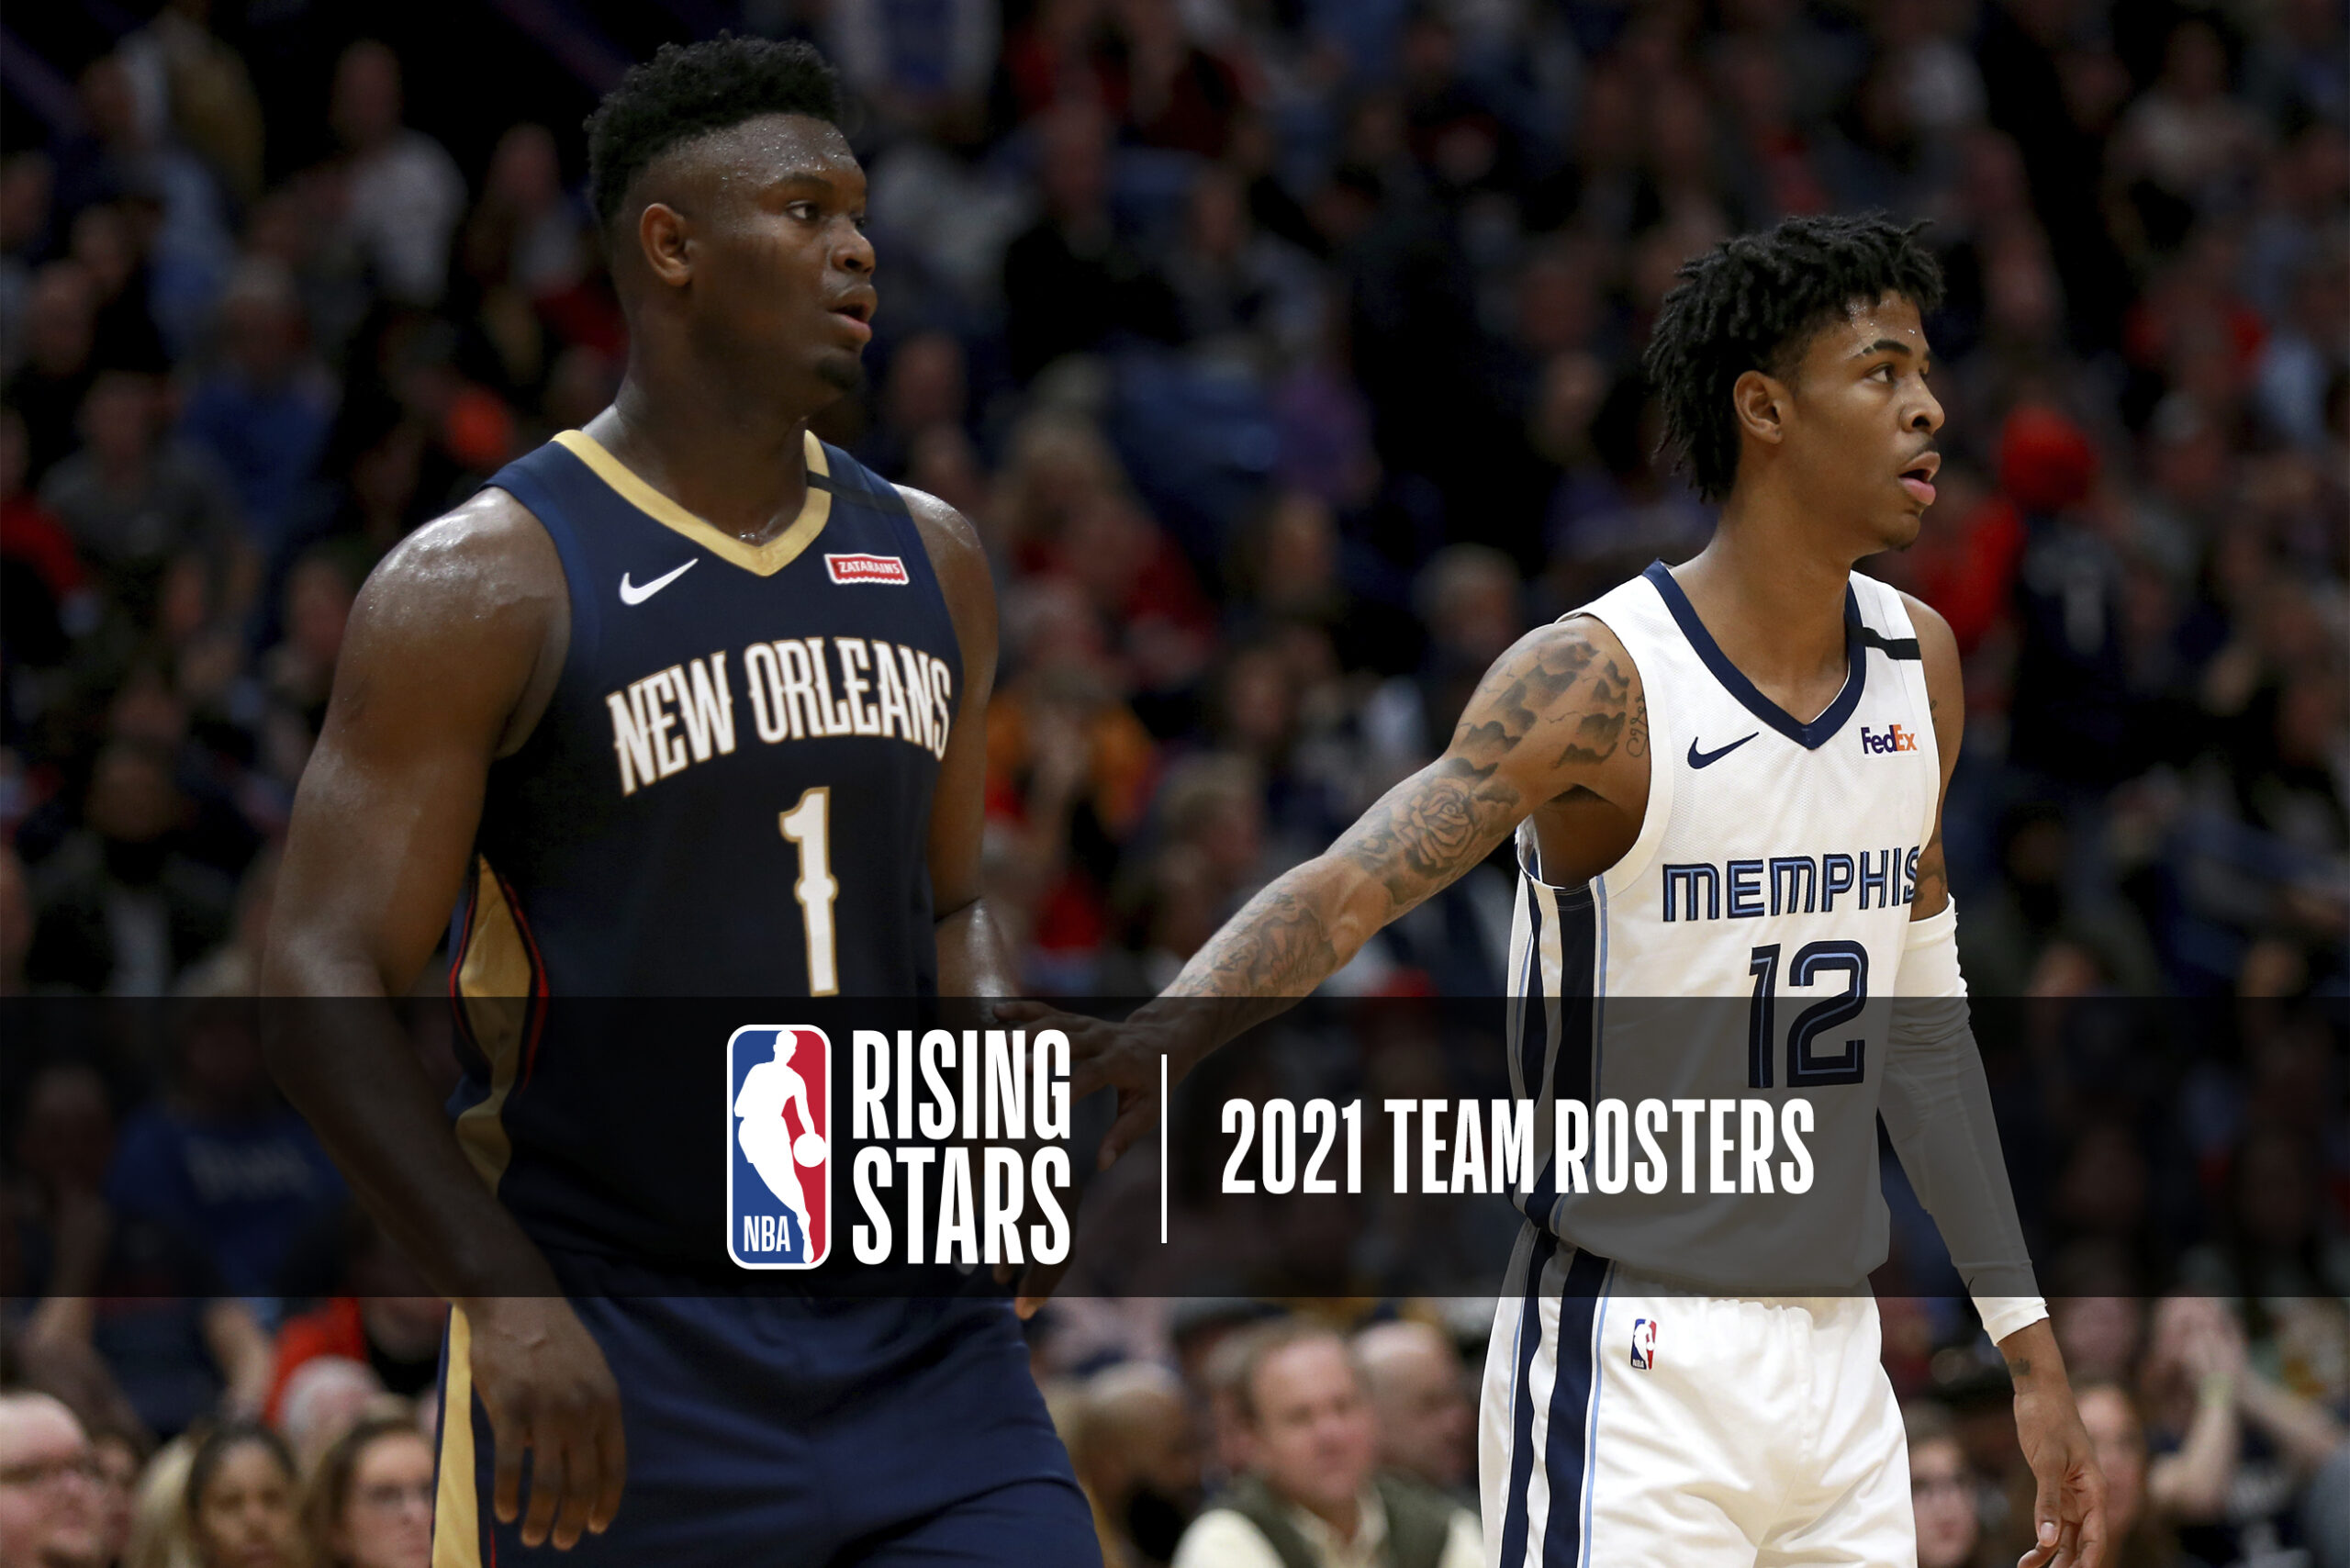 Zion Williamson, Ja Morant lead 2021 Rising Stars roster